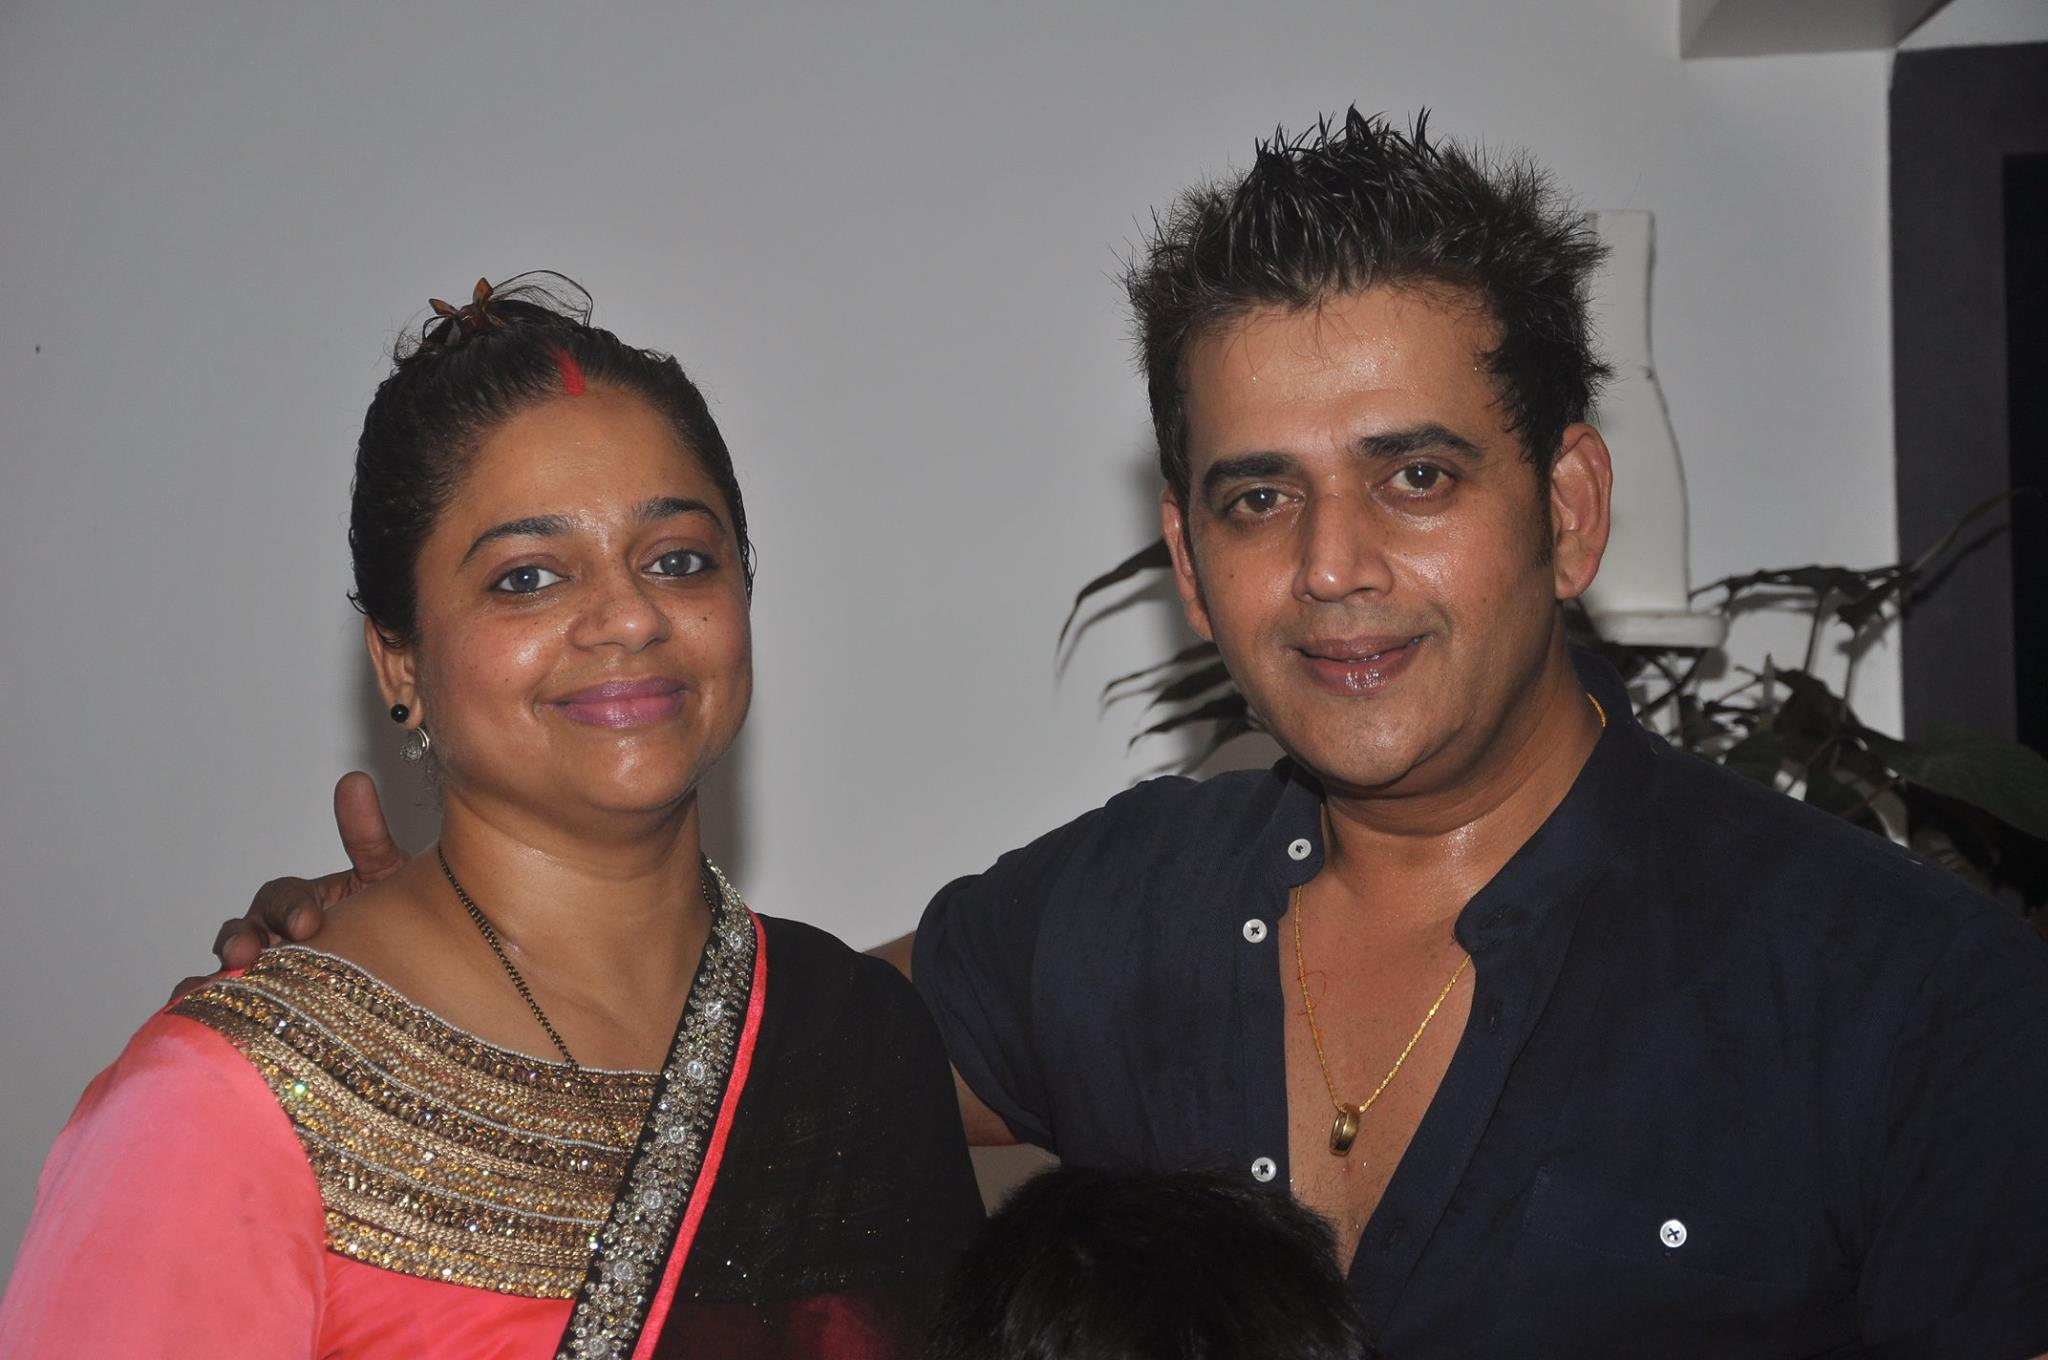 Actor Ravi Kishan reached Bangkok's Haseen Ladies to celebrate his wedding anniversary